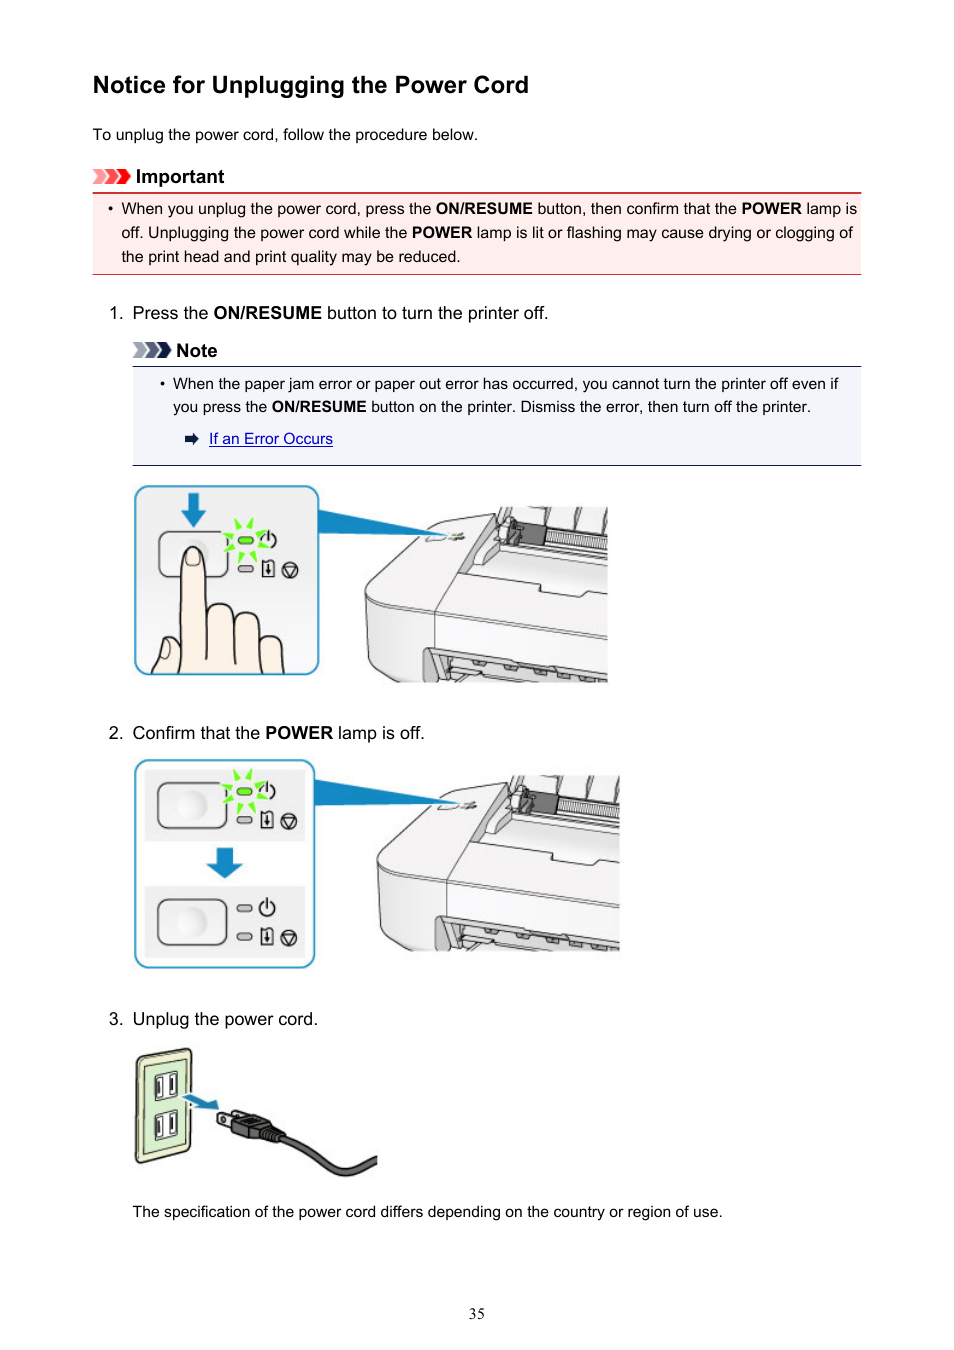 Notice For Unplugging The Power Cord When You Unplug The Power